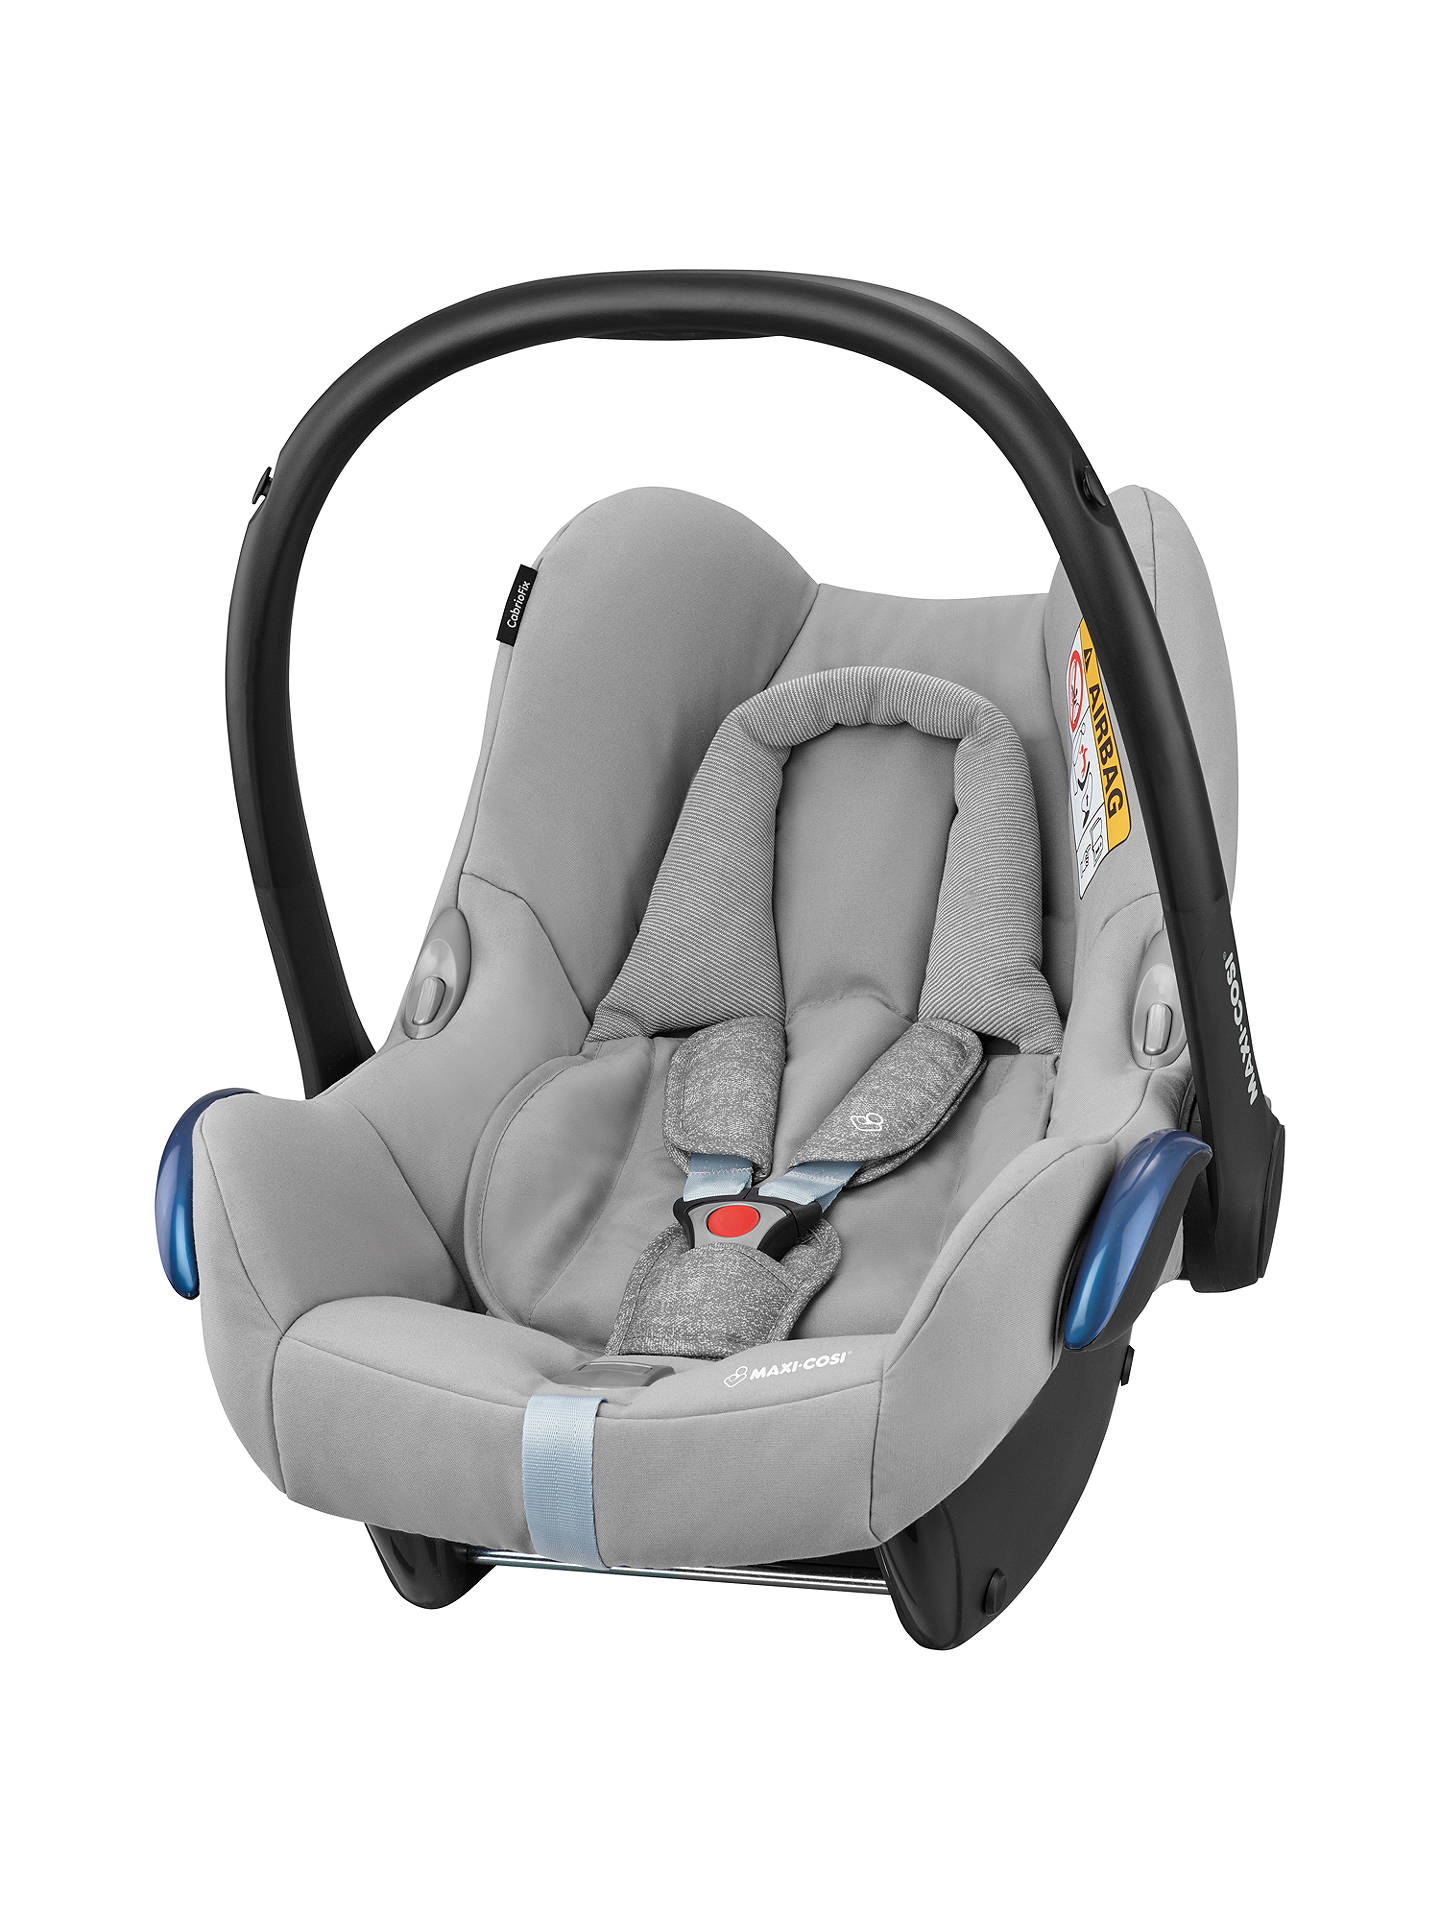 maxi cosi cabriofix group 0 baby car seat nomad grey at. Black Bedroom Furniture Sets. Home Design Ideas